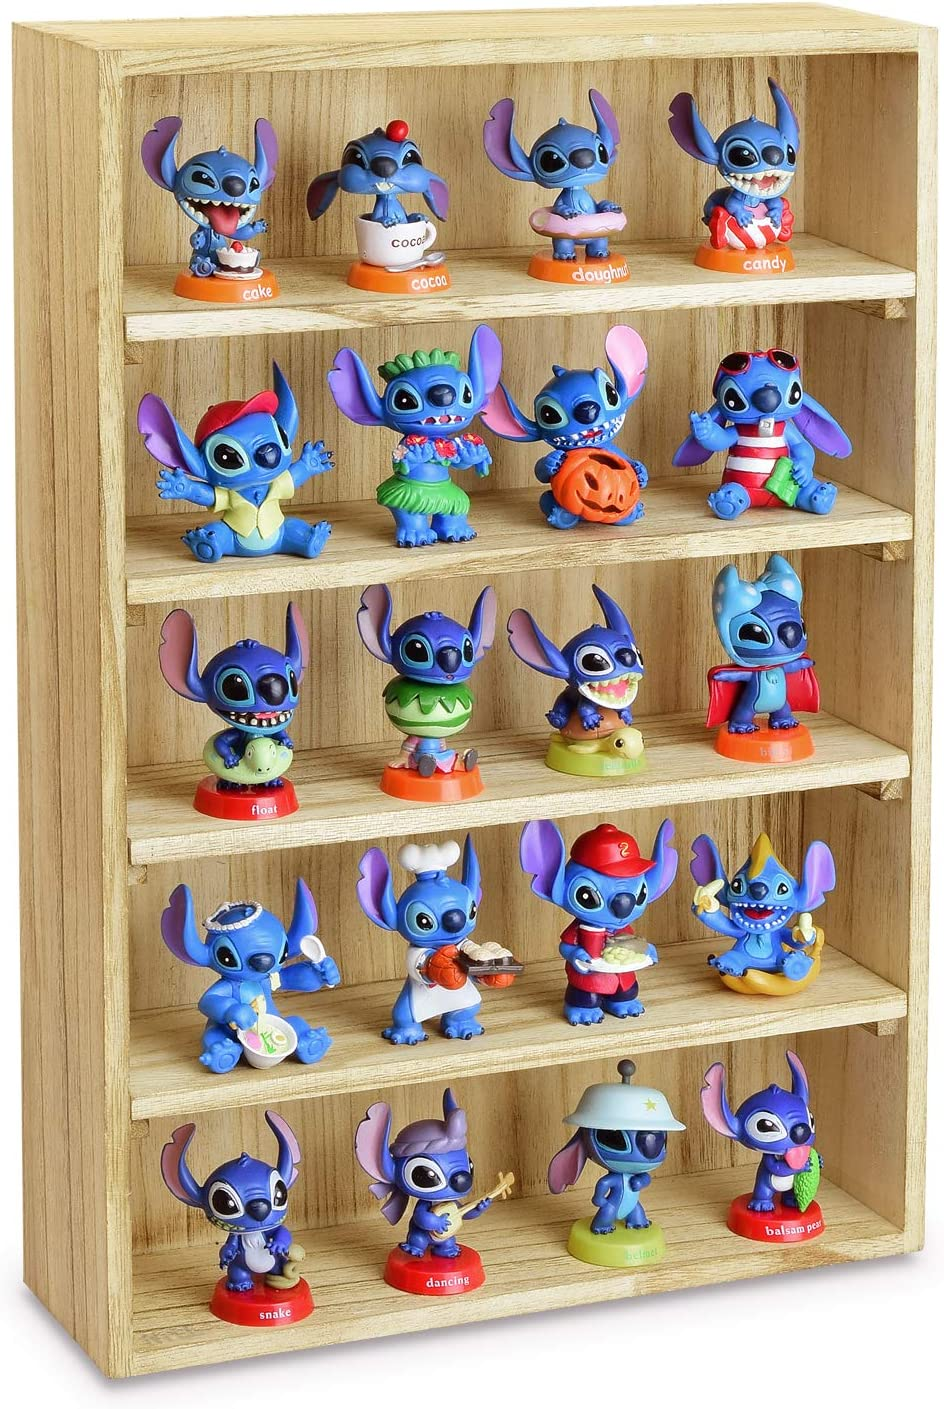 Ikee Design Wooden Wall-Mounted Display Shelves Rack for Figures, Shot Glasses, Spice Can or Collection, 11